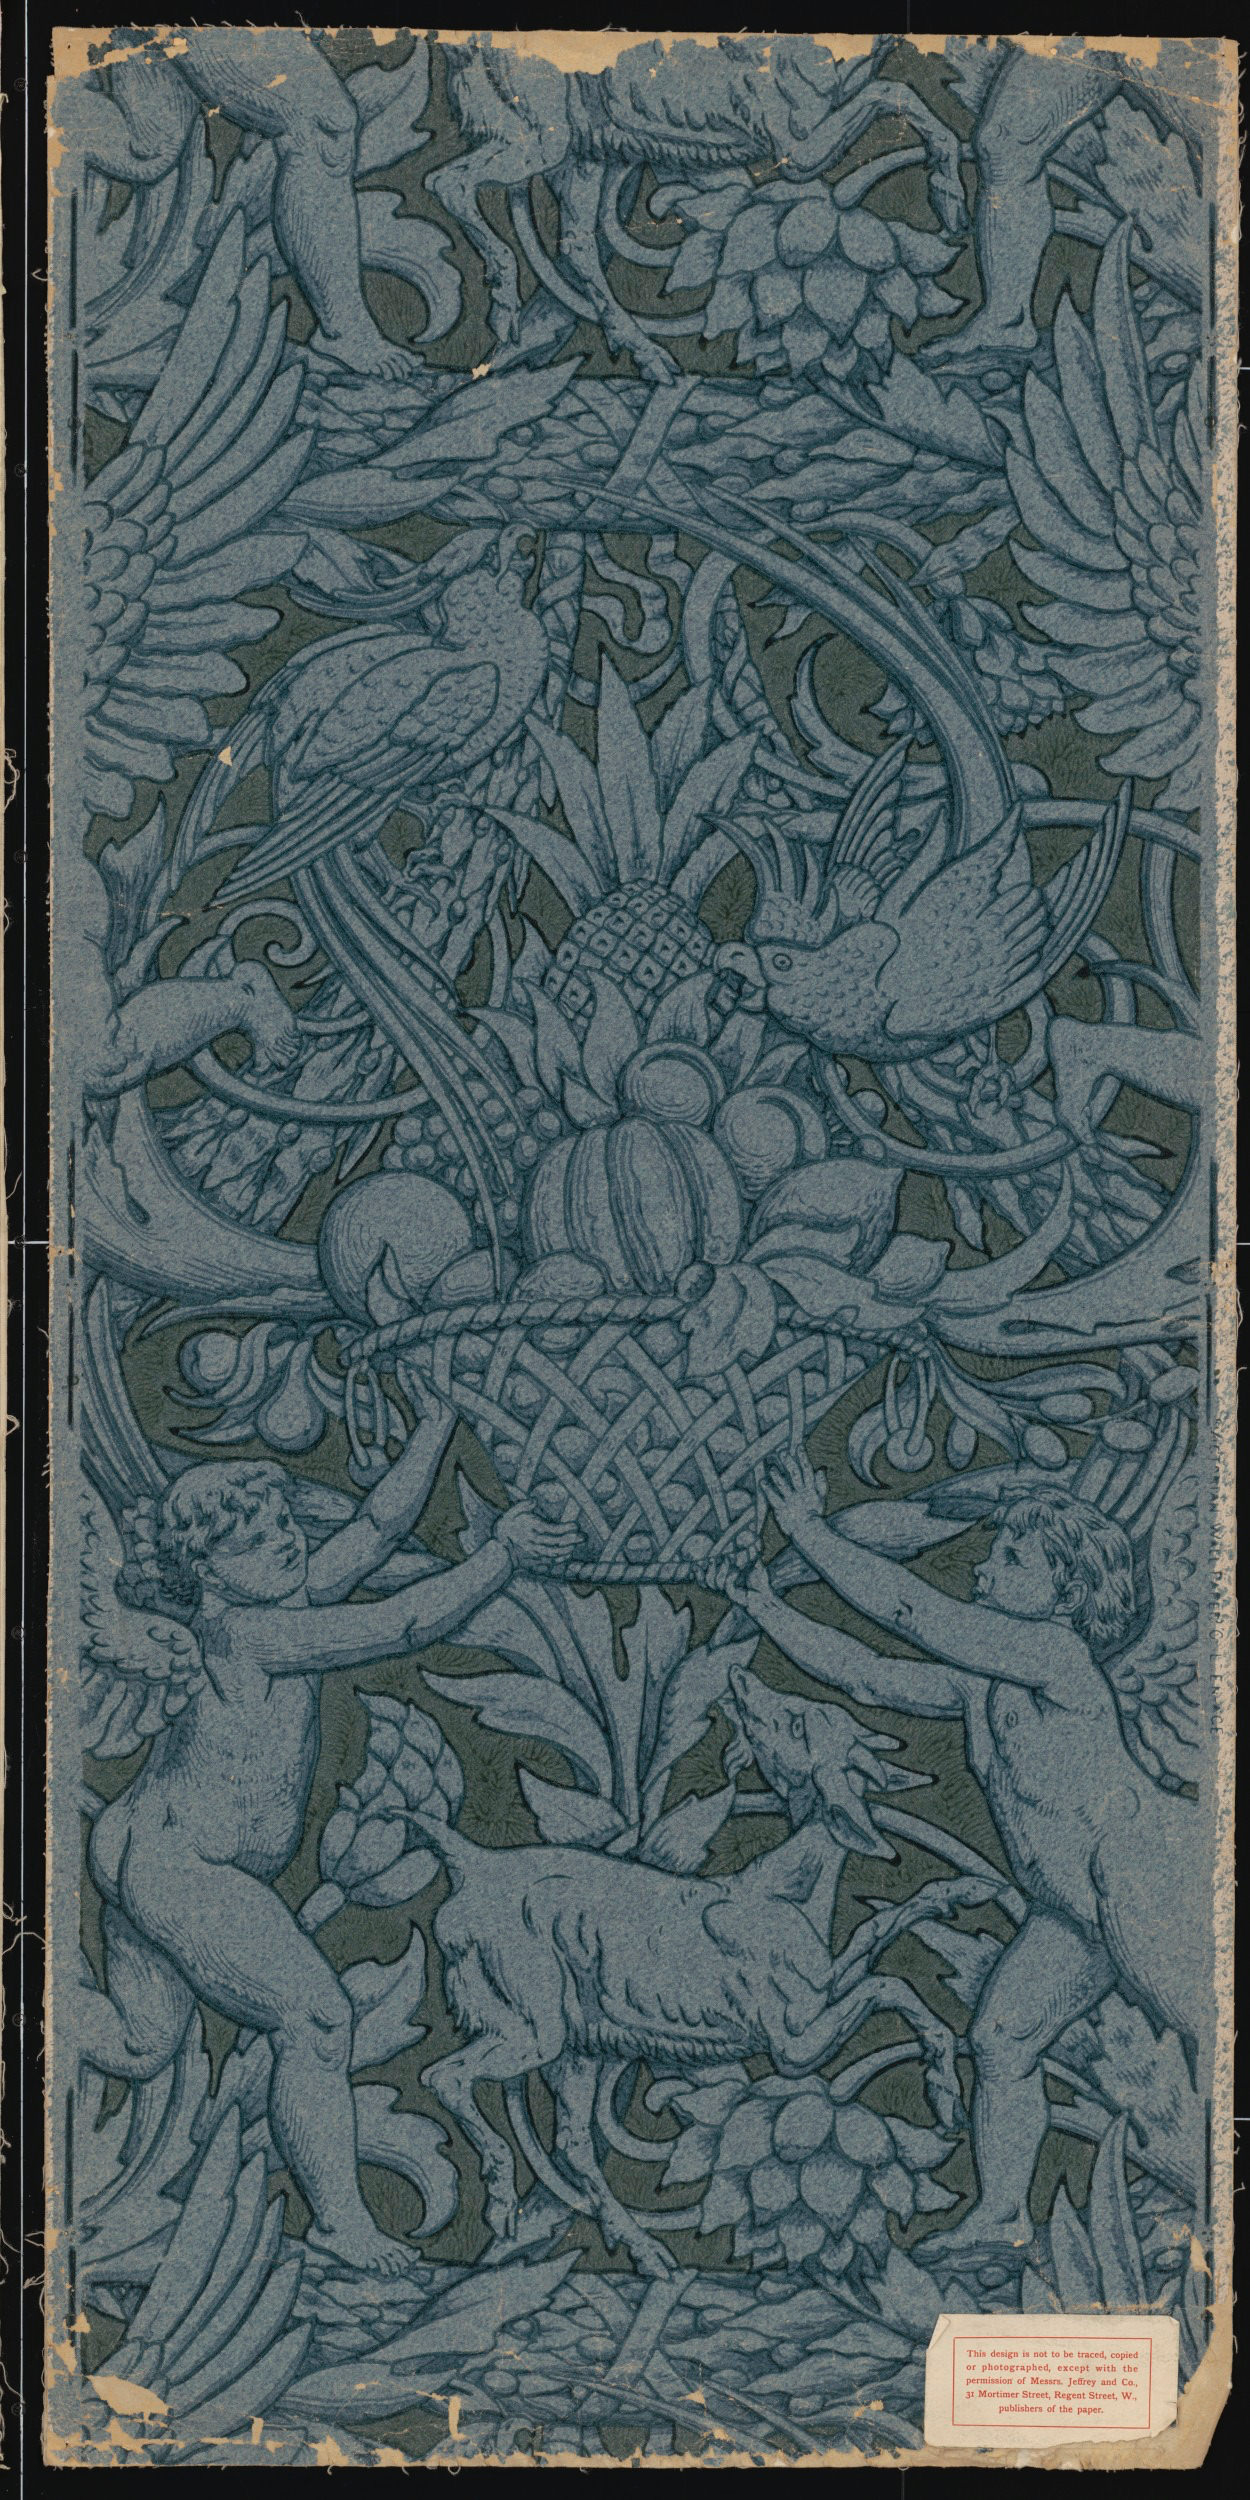 colour woodblock print on paper in blue colourway, 116.9 x 54 cm. Victoria and Albert Museum, London